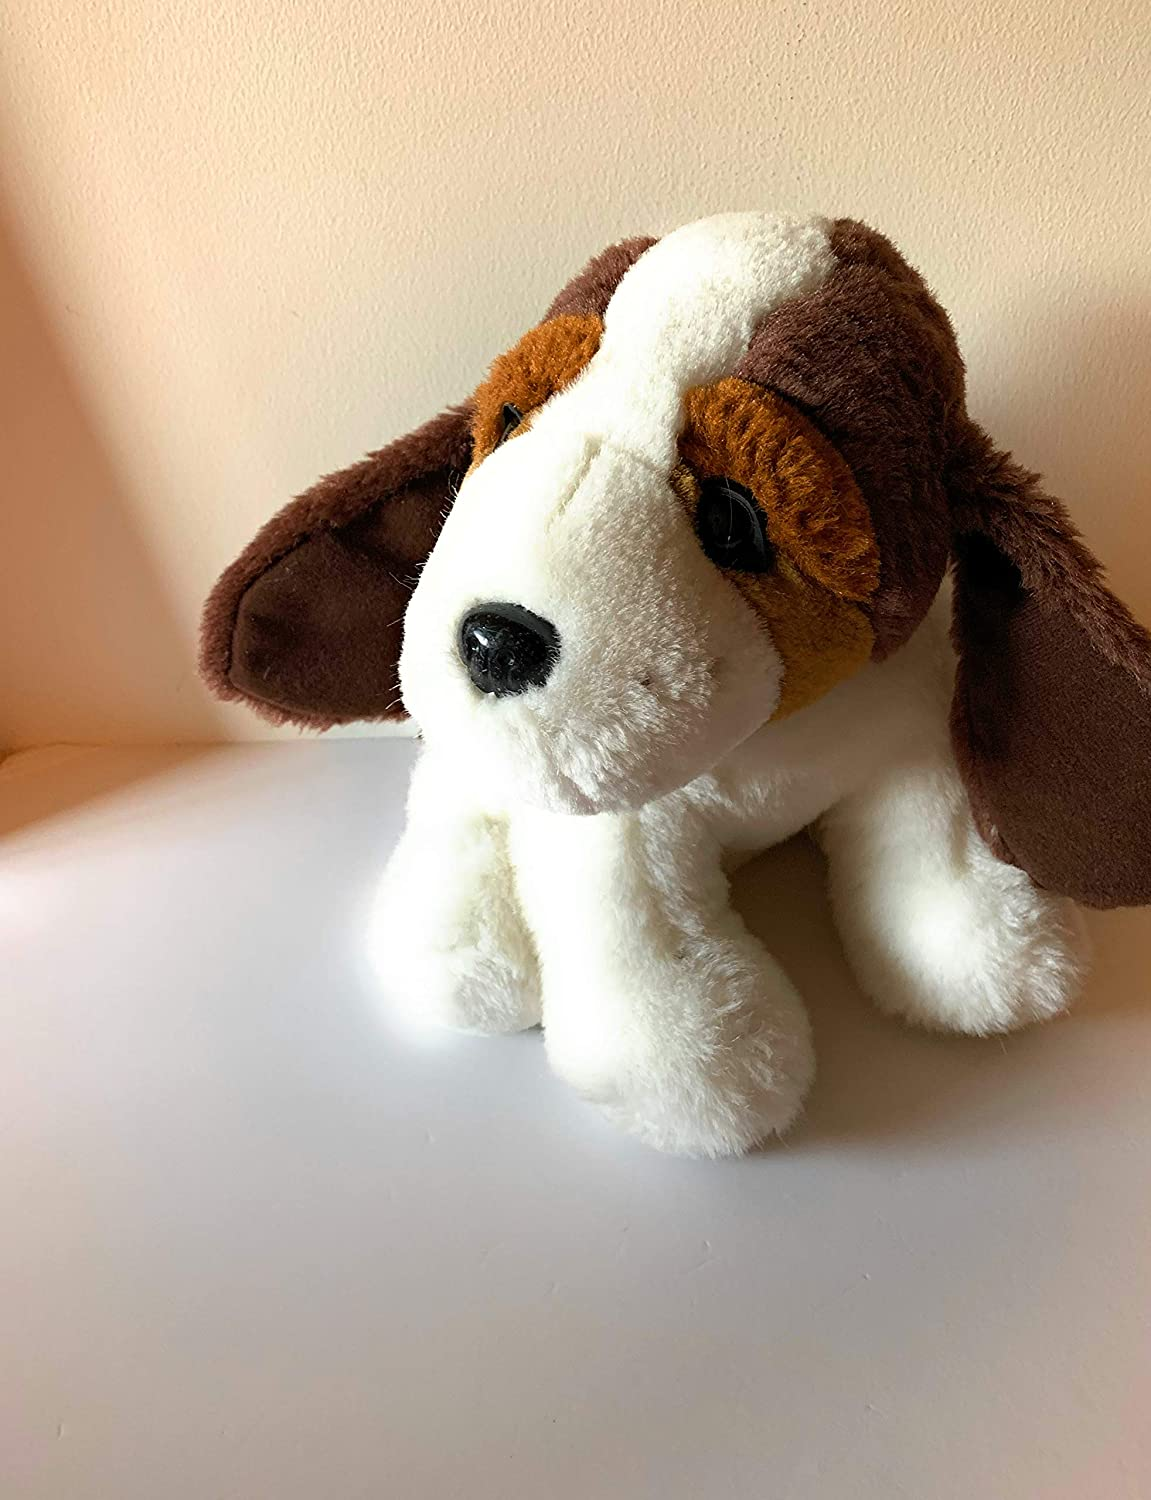 washable weighted buddy beagle 2 1//2 lbs sensory toy Weighted stuffed animal -dog